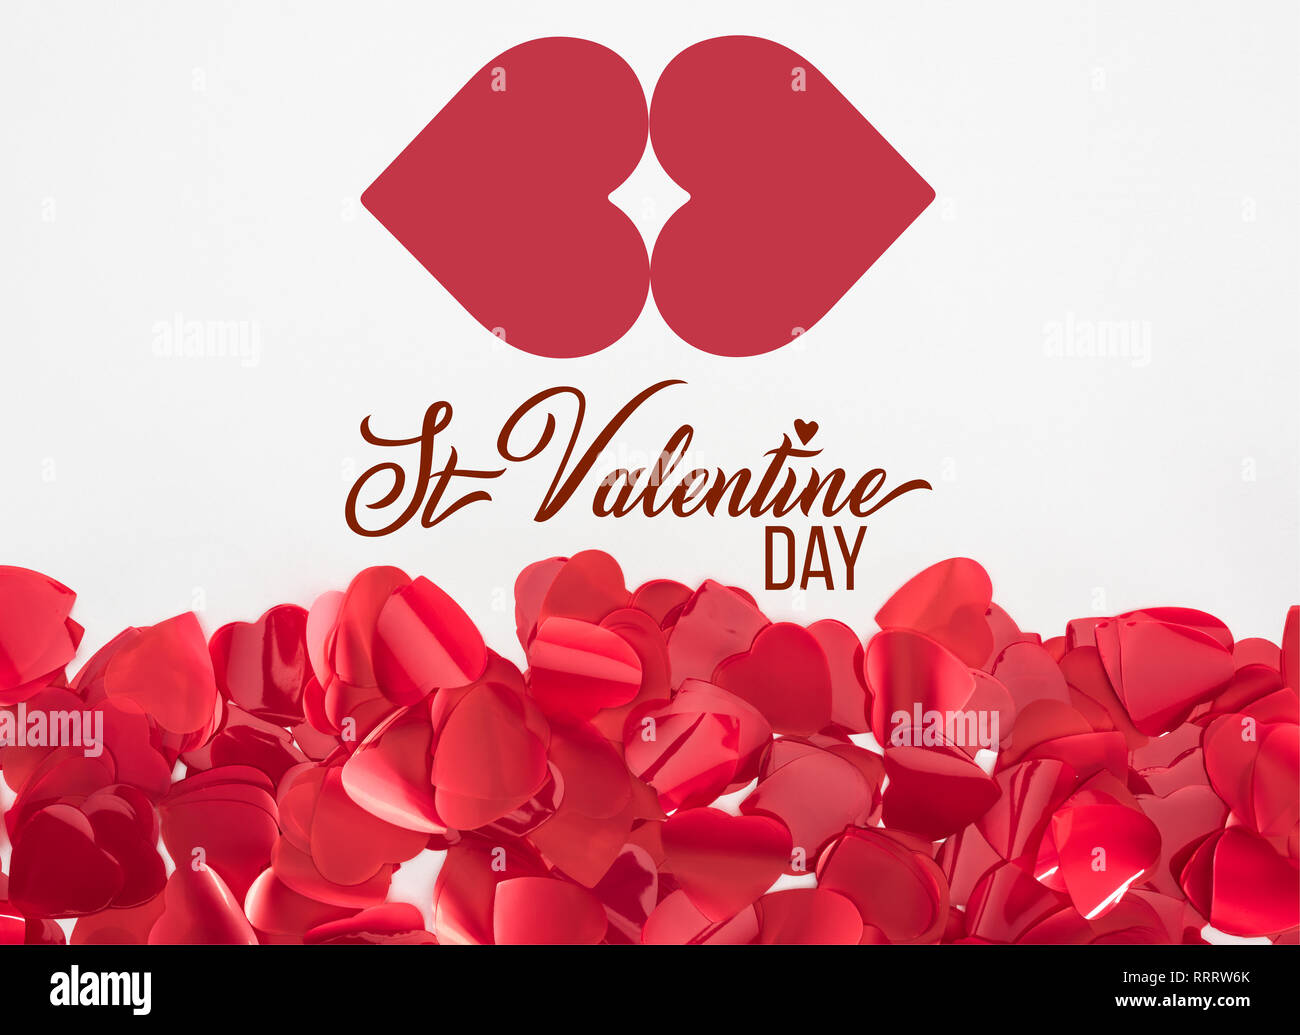 close-up view of beautiful red heart shaped petals on grey background with 'st valentine day' lettering - Stock Image